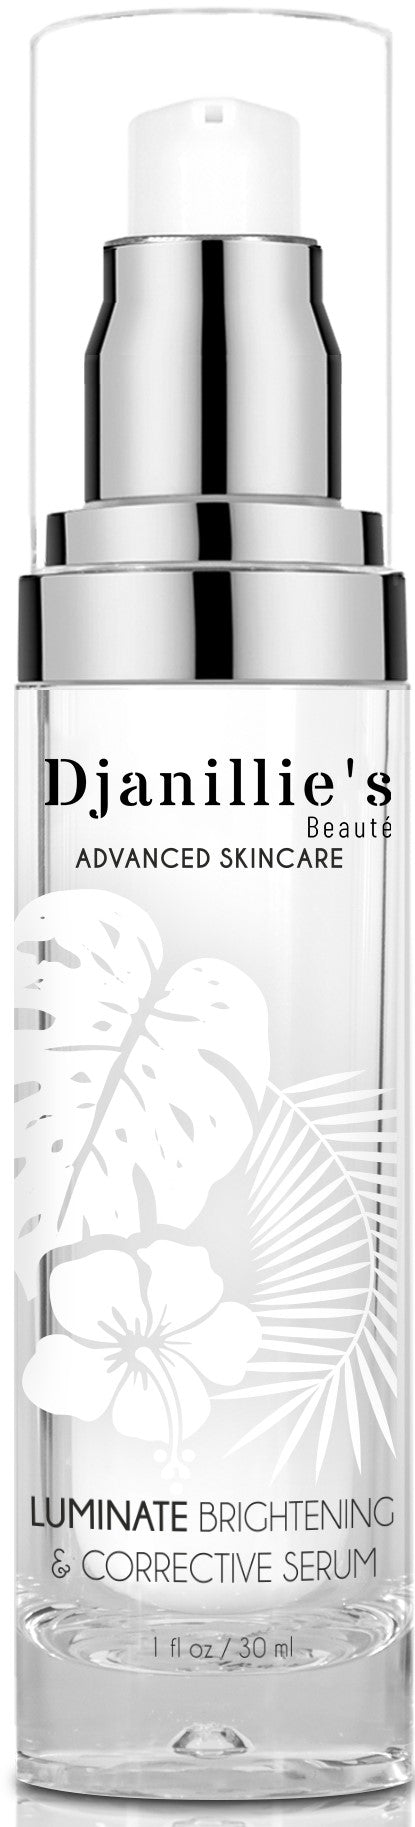 Luminate  Corrective Serum - Djanillie's